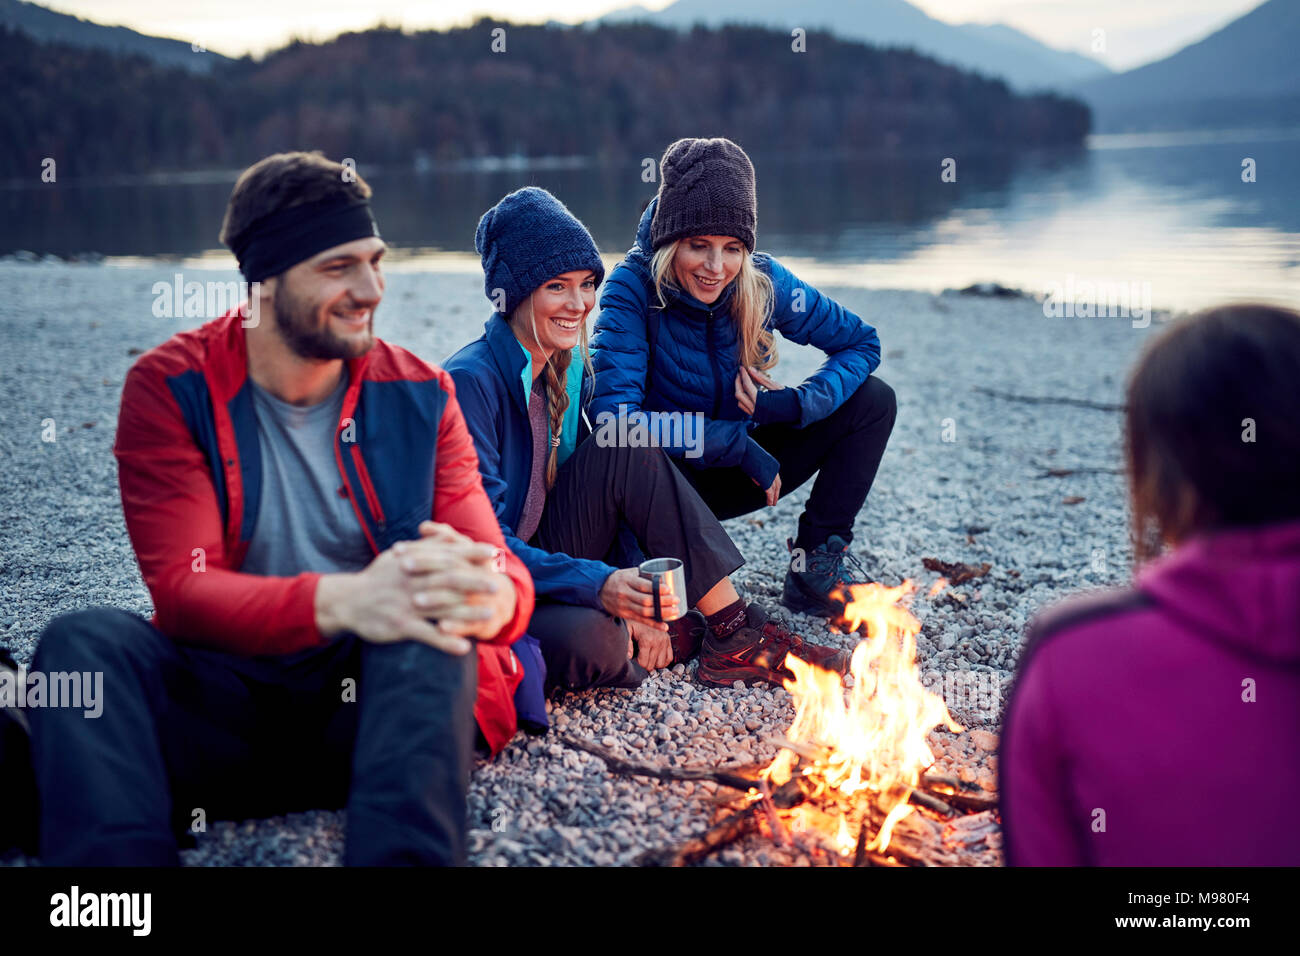 Smiling friends sitting around campfire at lakeshore - Stock Image